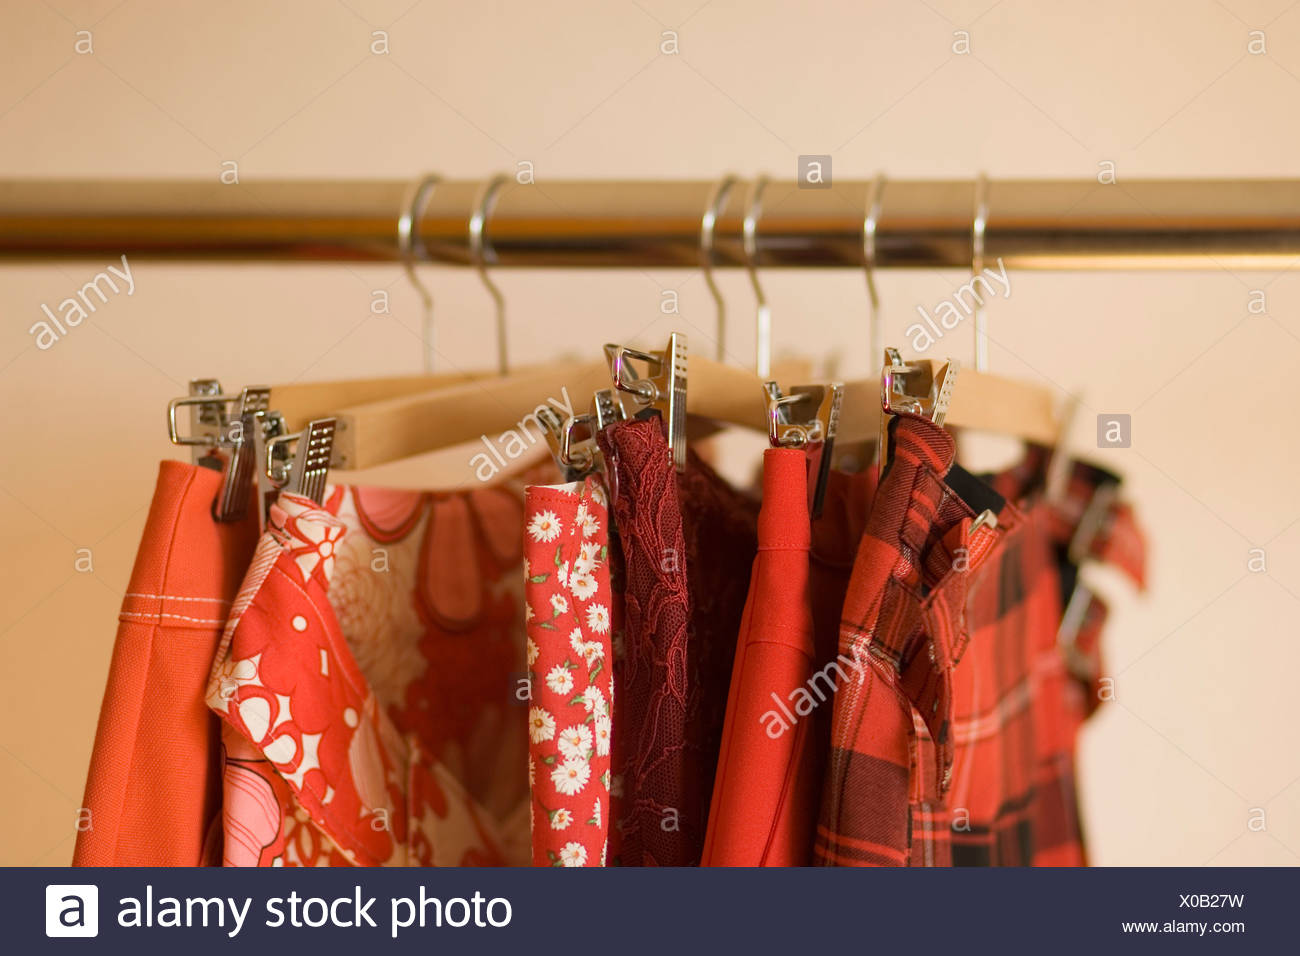 Skirts hanging on clothes rack - Stock Image